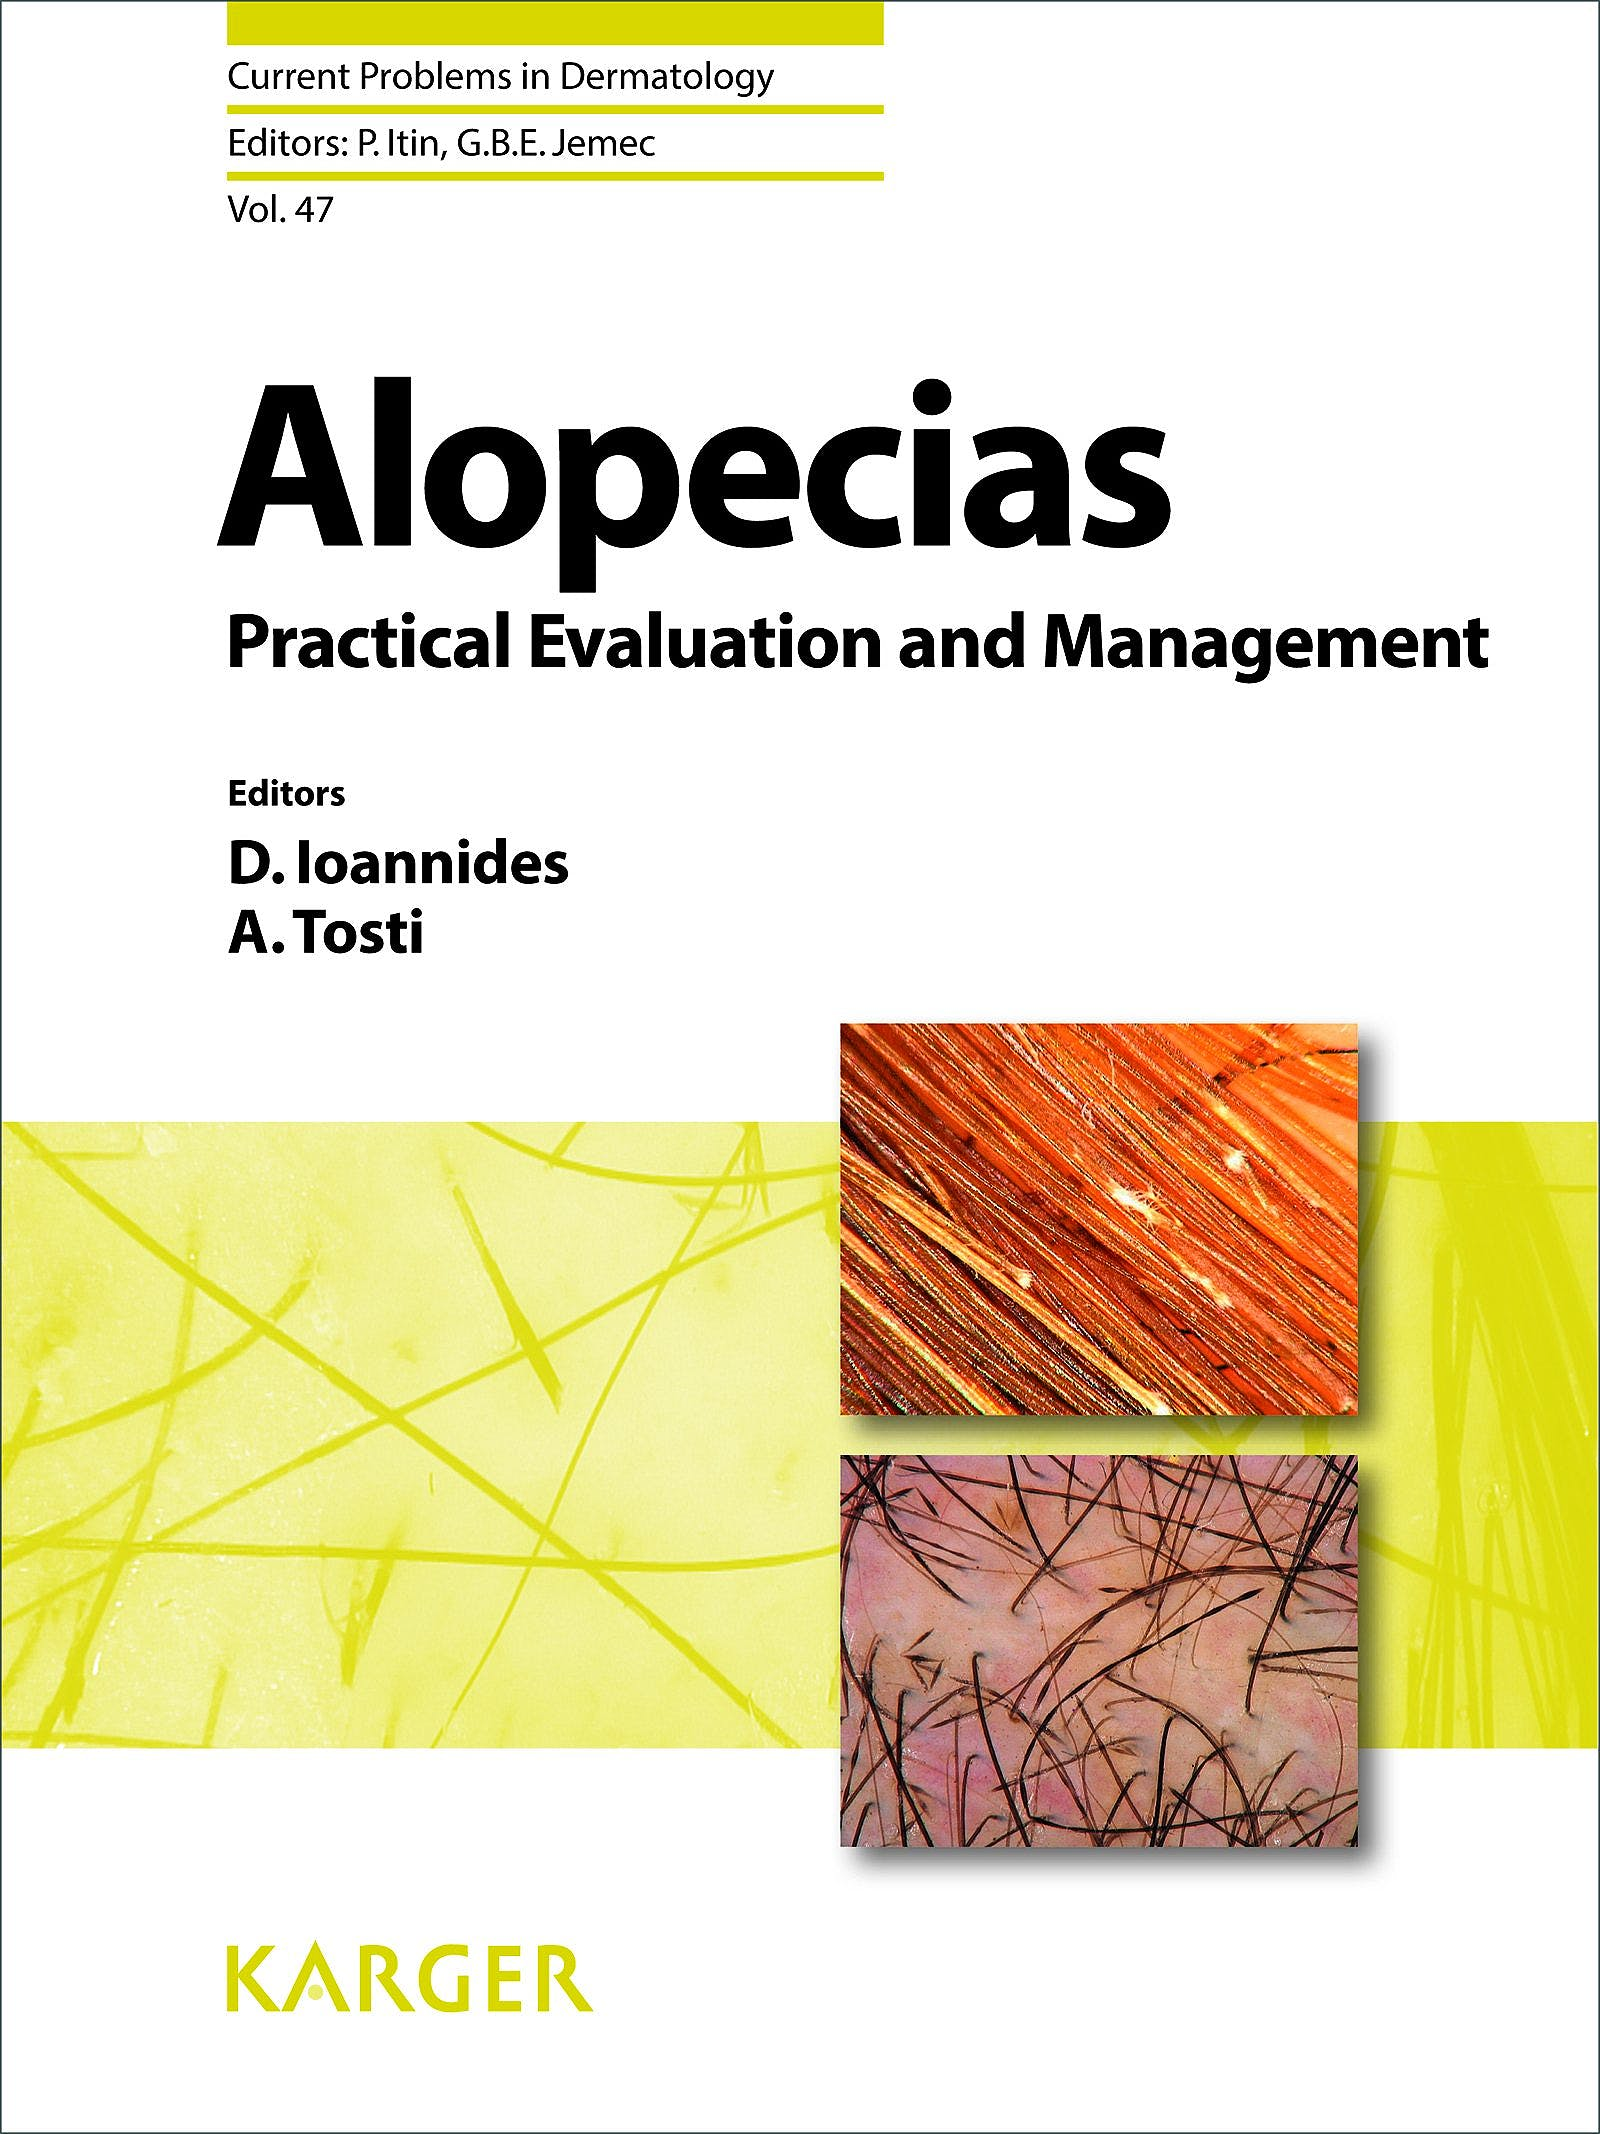 Portada del libro 9783318027747 Alopecias - Practical Evaluation and Management (Current Problems in Dermatology, Vol. 47)